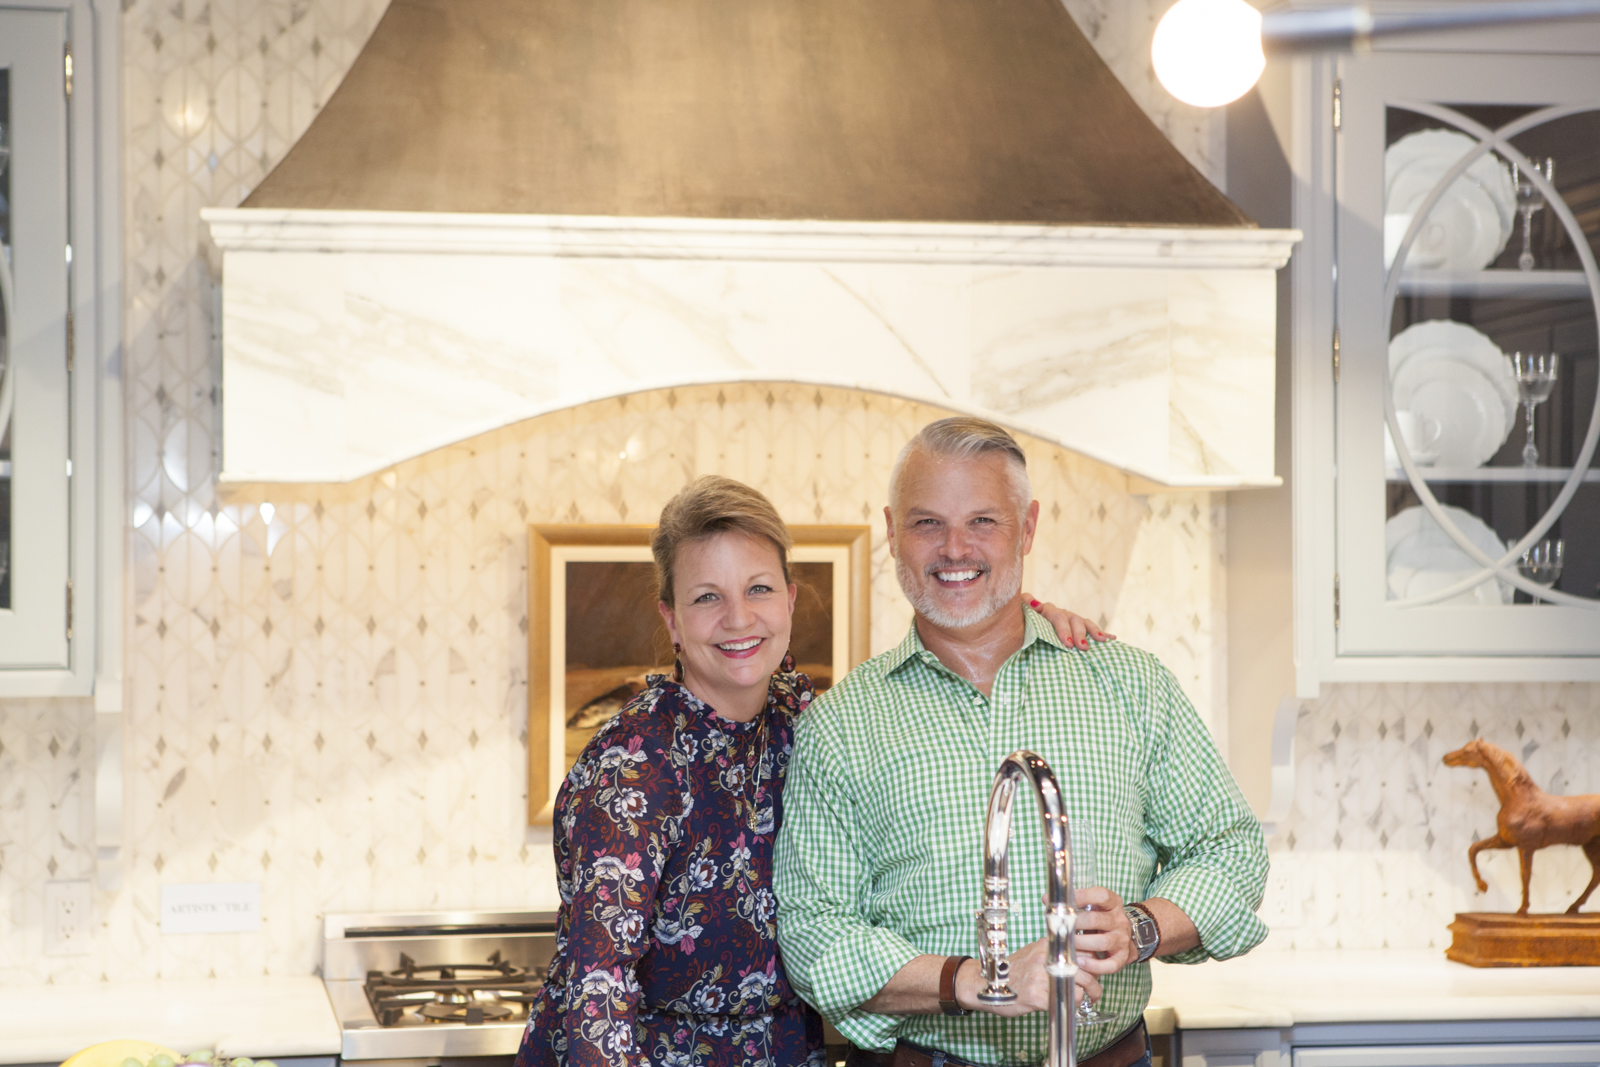 Lori Sheldon of Traditional Home, with David Patrick Hamilton